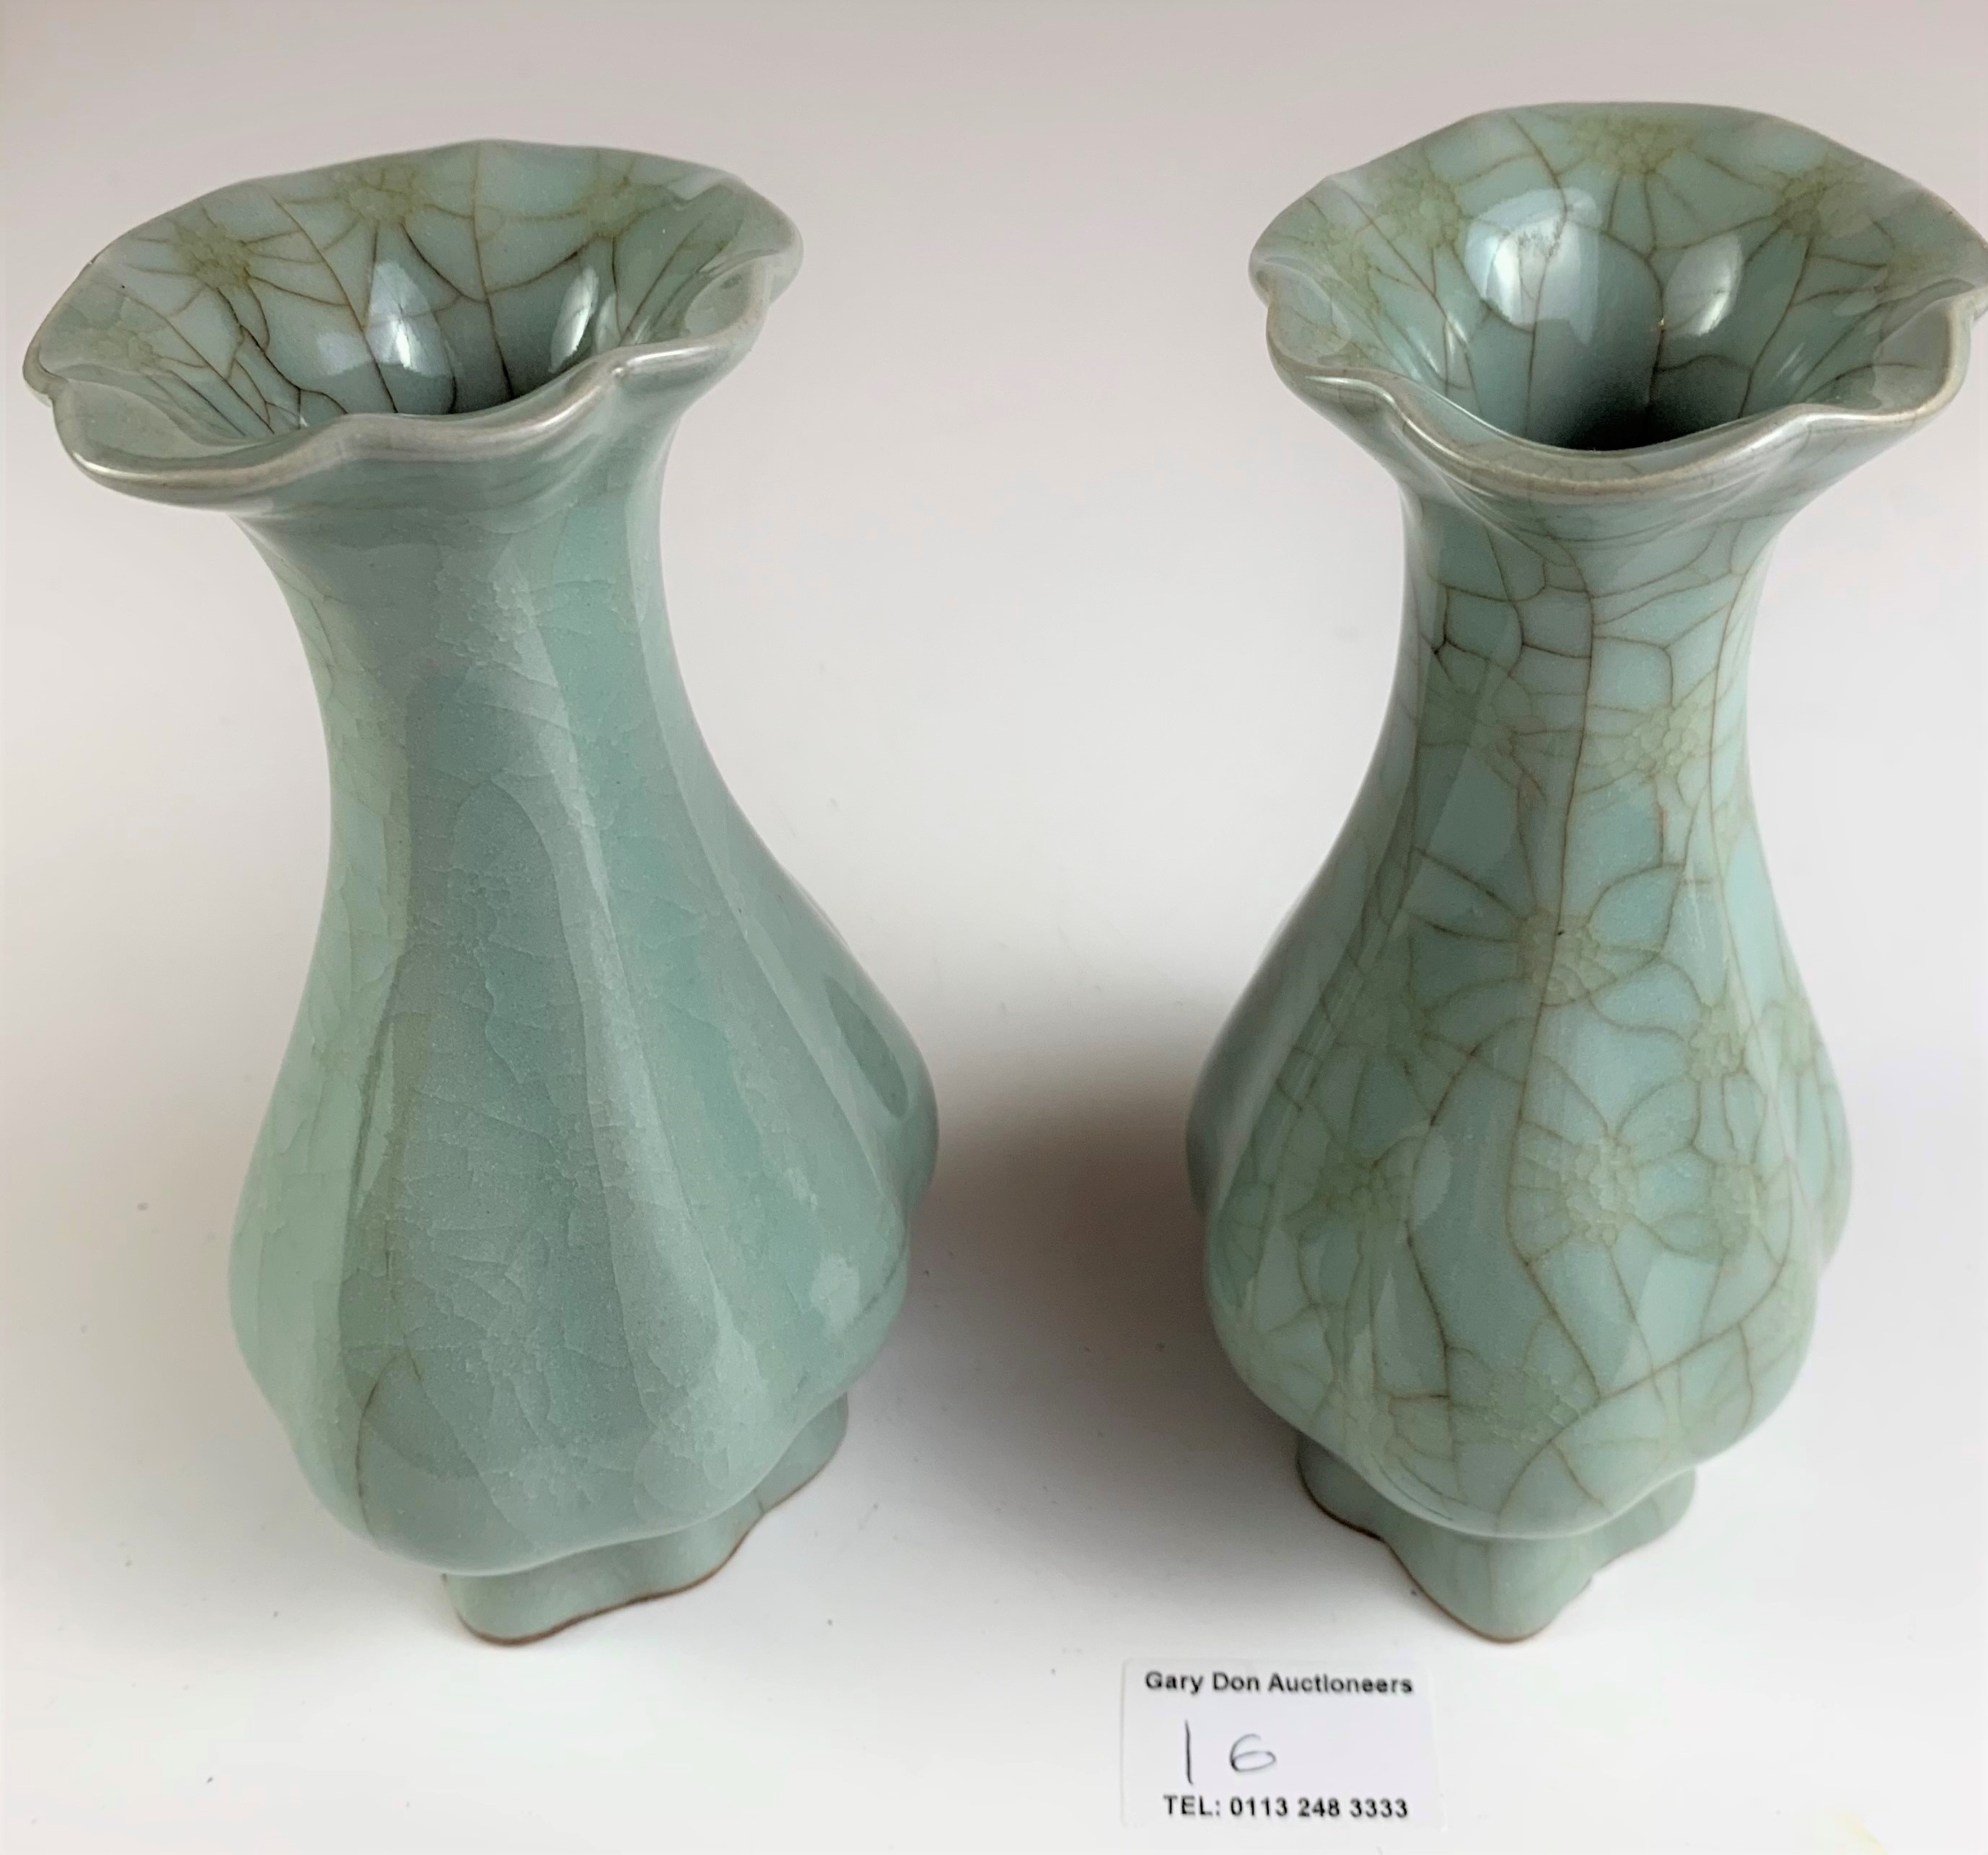 """Pair of Chinese vases in wooden presentation box marked Longquan Royal Kiln China. Vases 6"""" high, - Image 7 of 8"""